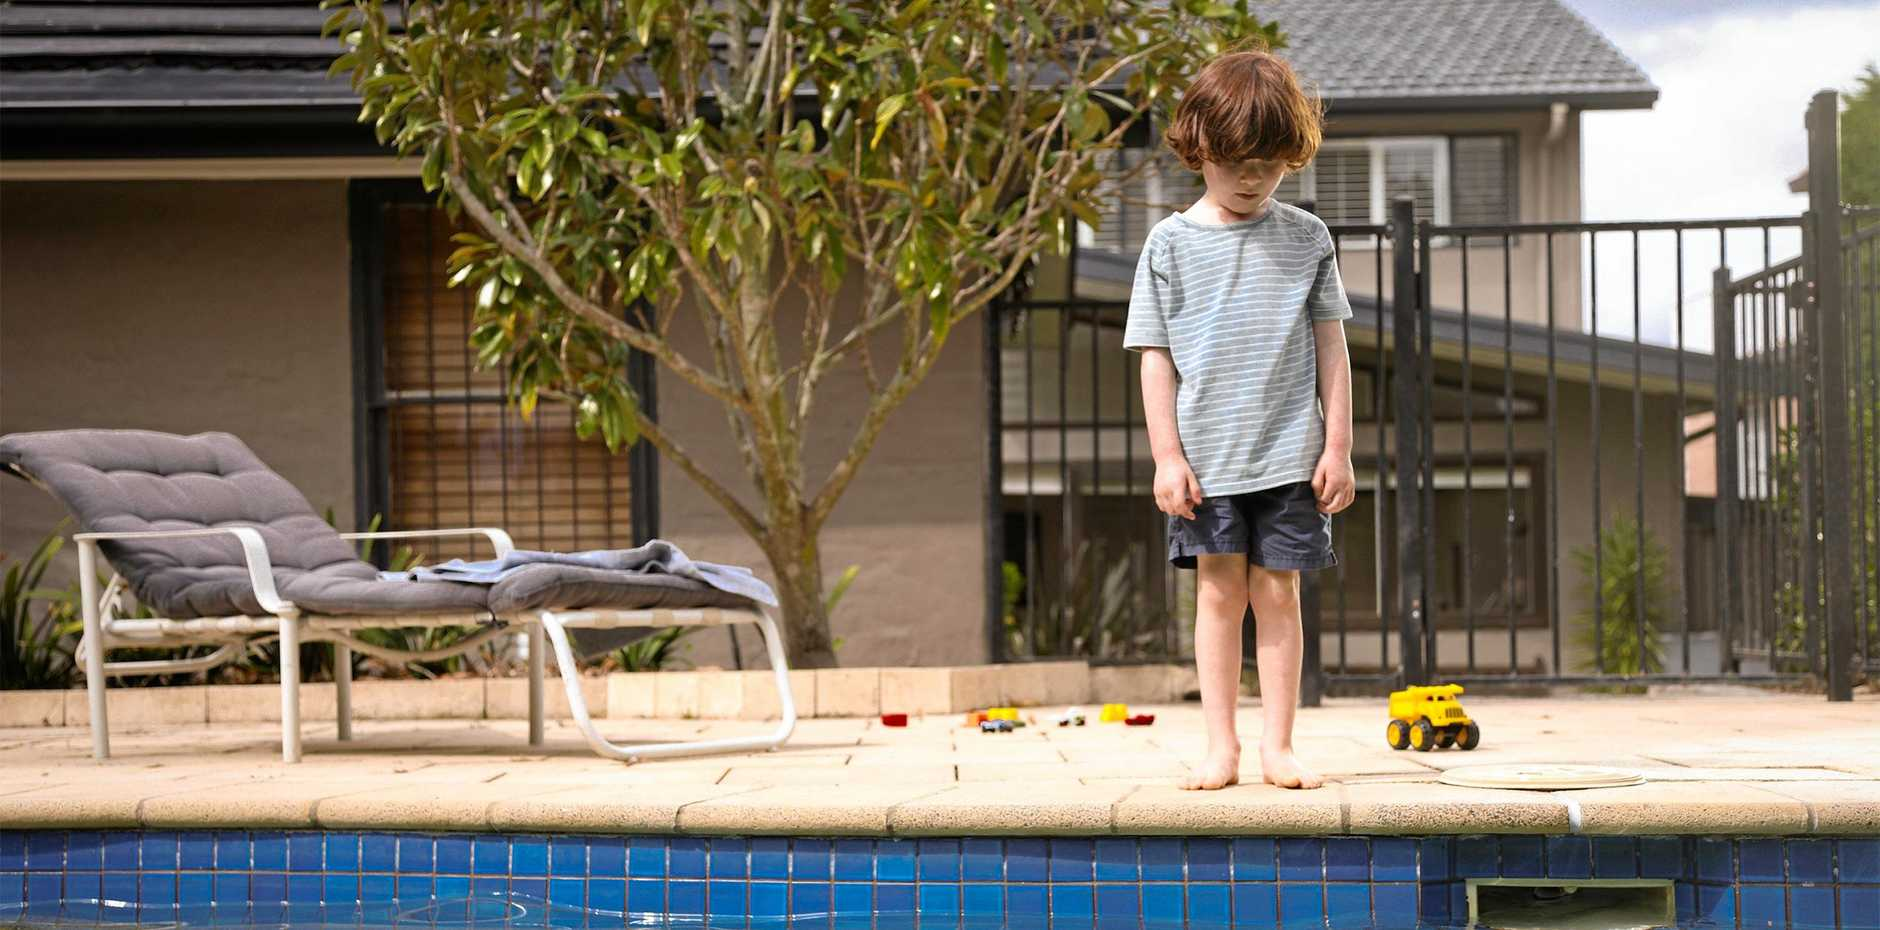 Nationwide research shows that 461 children under the age of five died due to drowning in Australia over the past 15 years,.